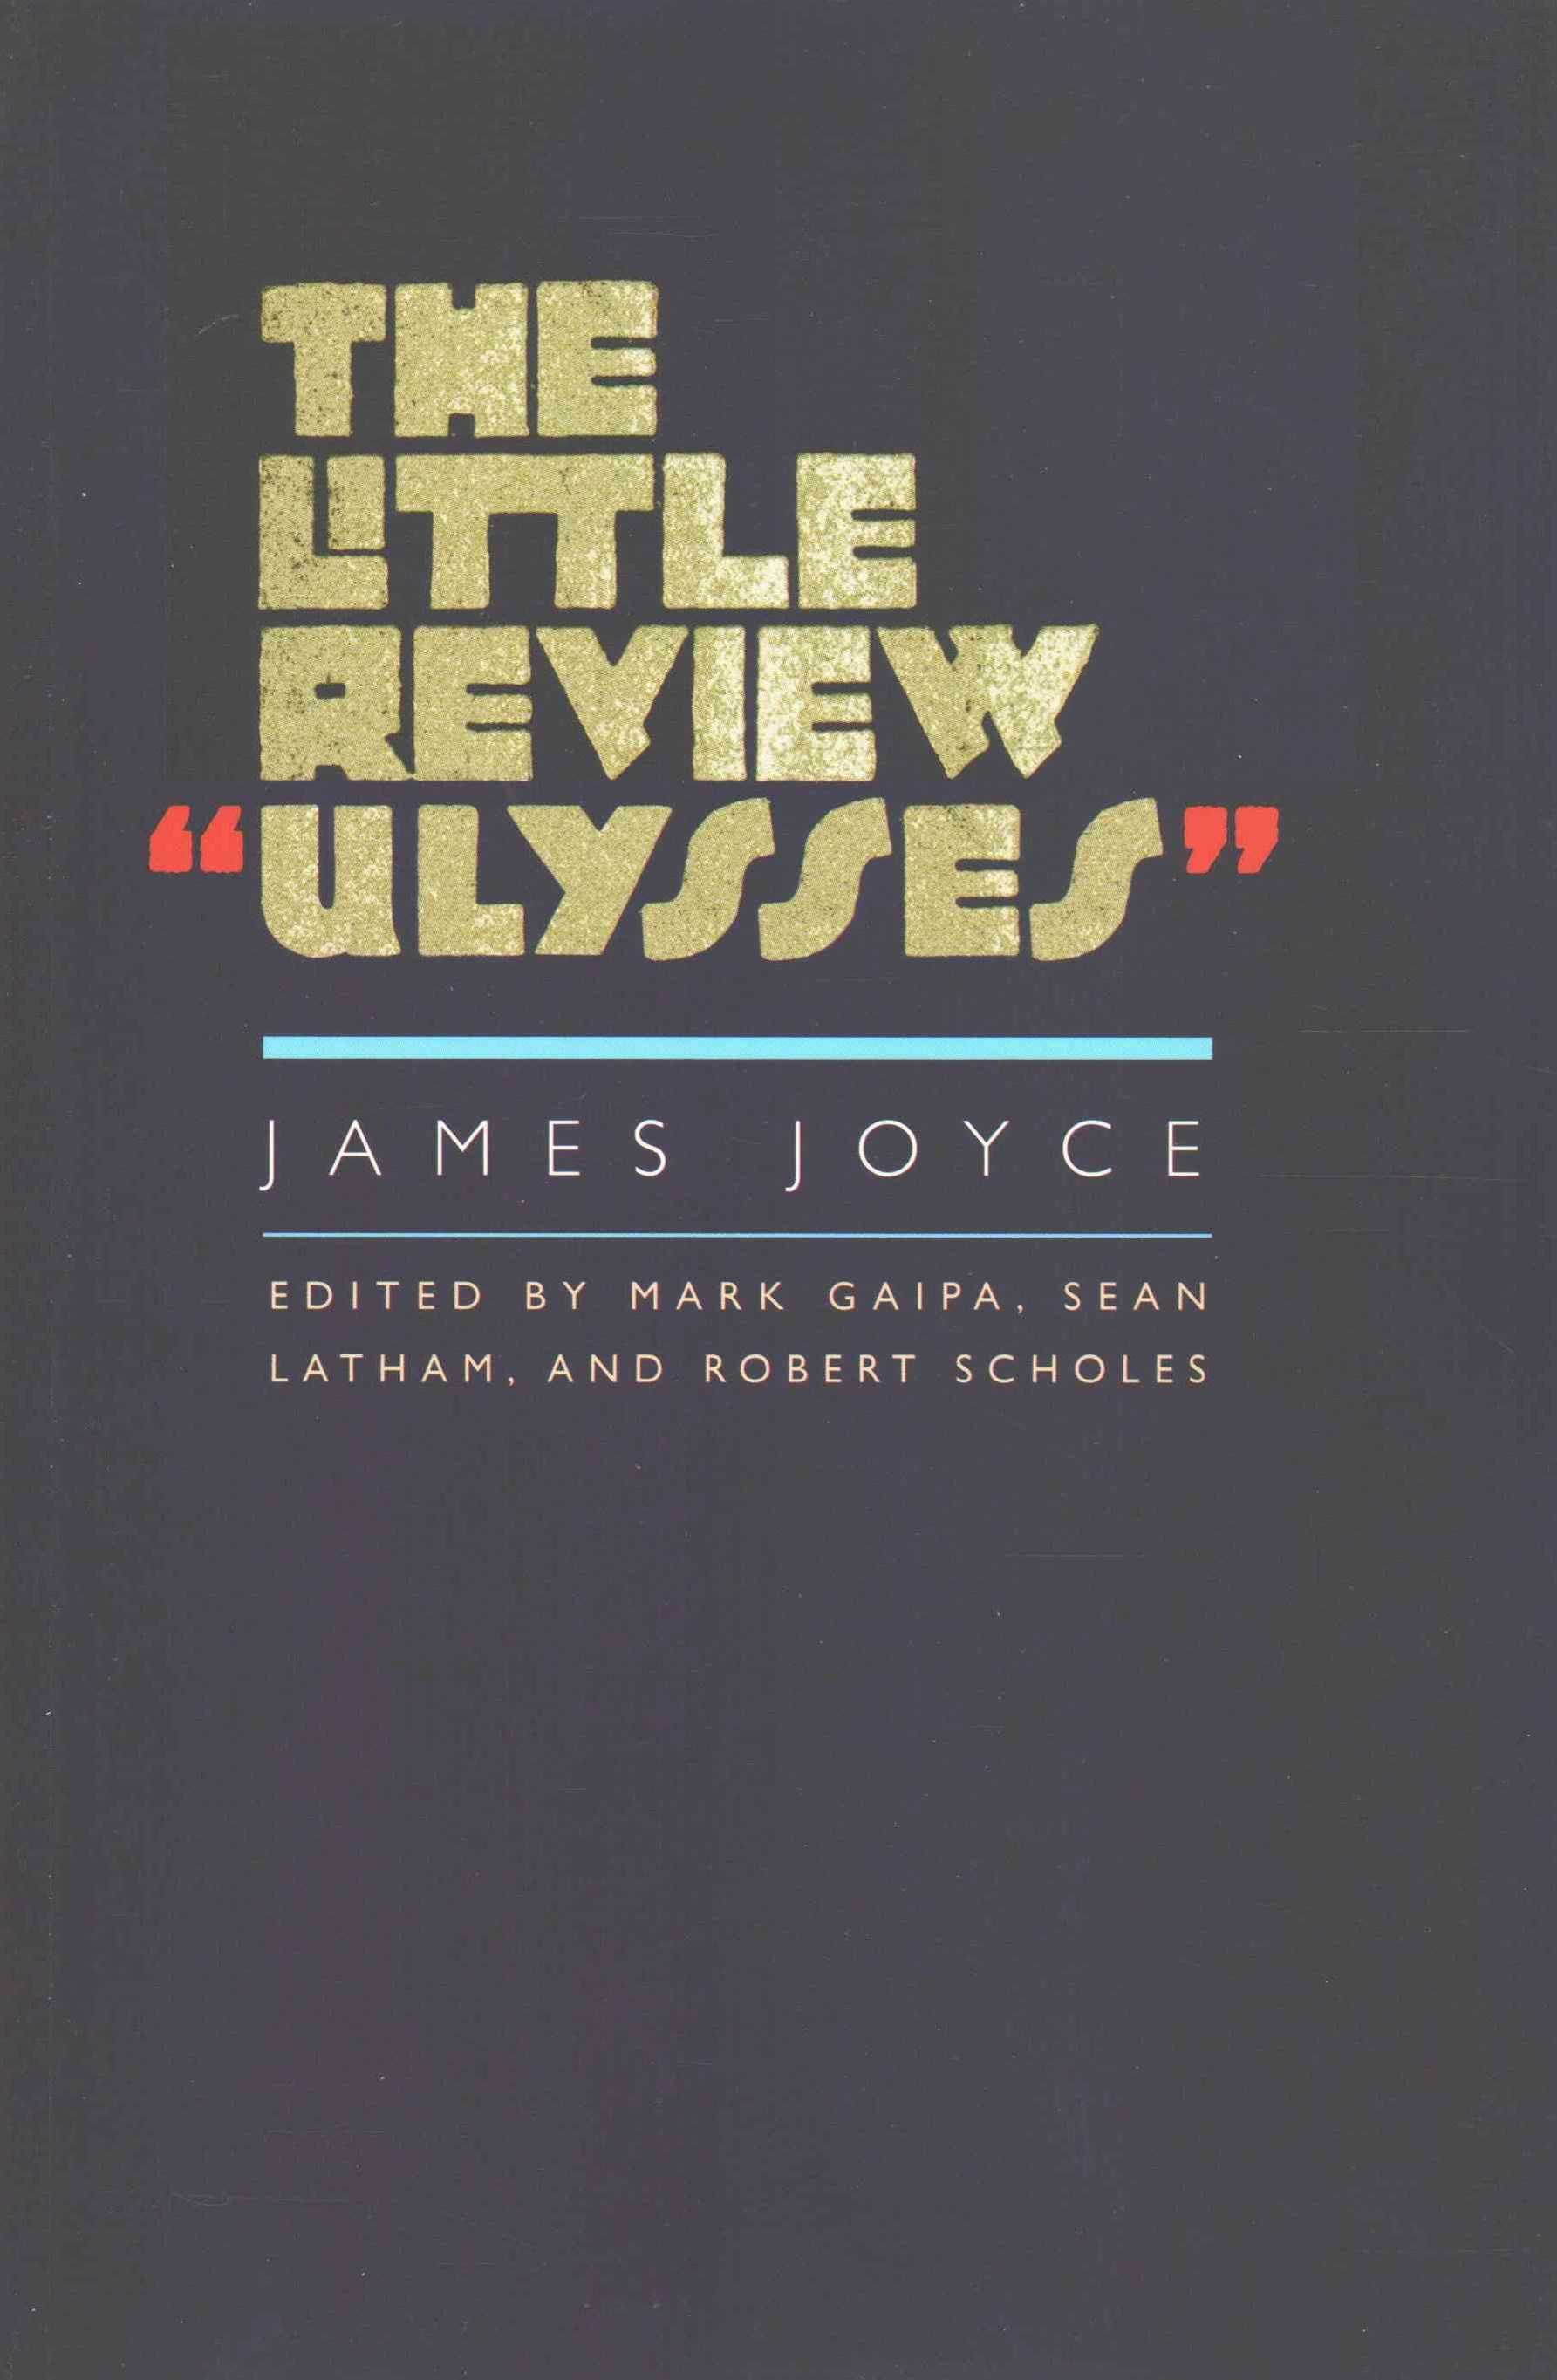 The Little Review Ulysses